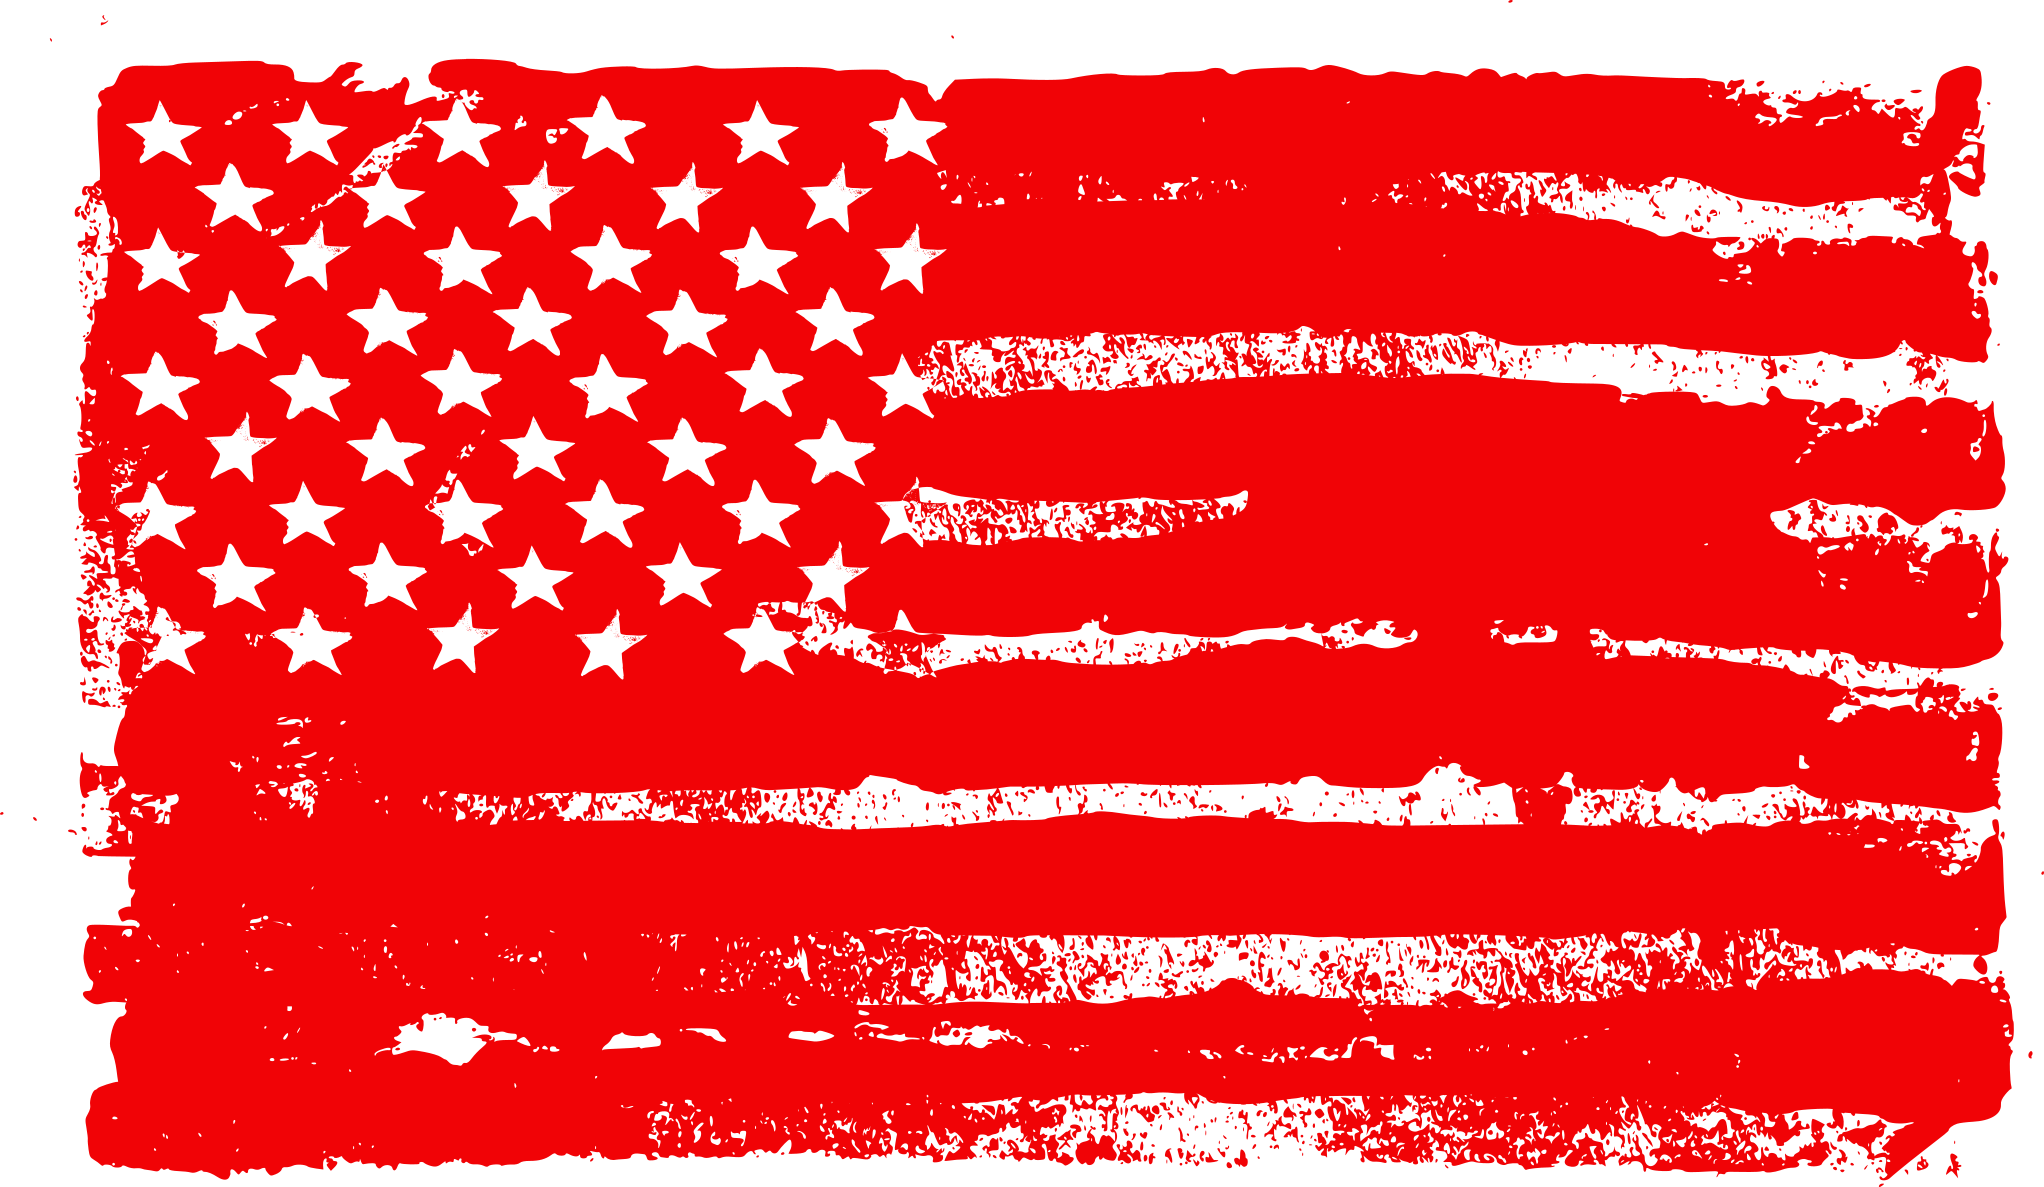 grunge-american-flag-1.png